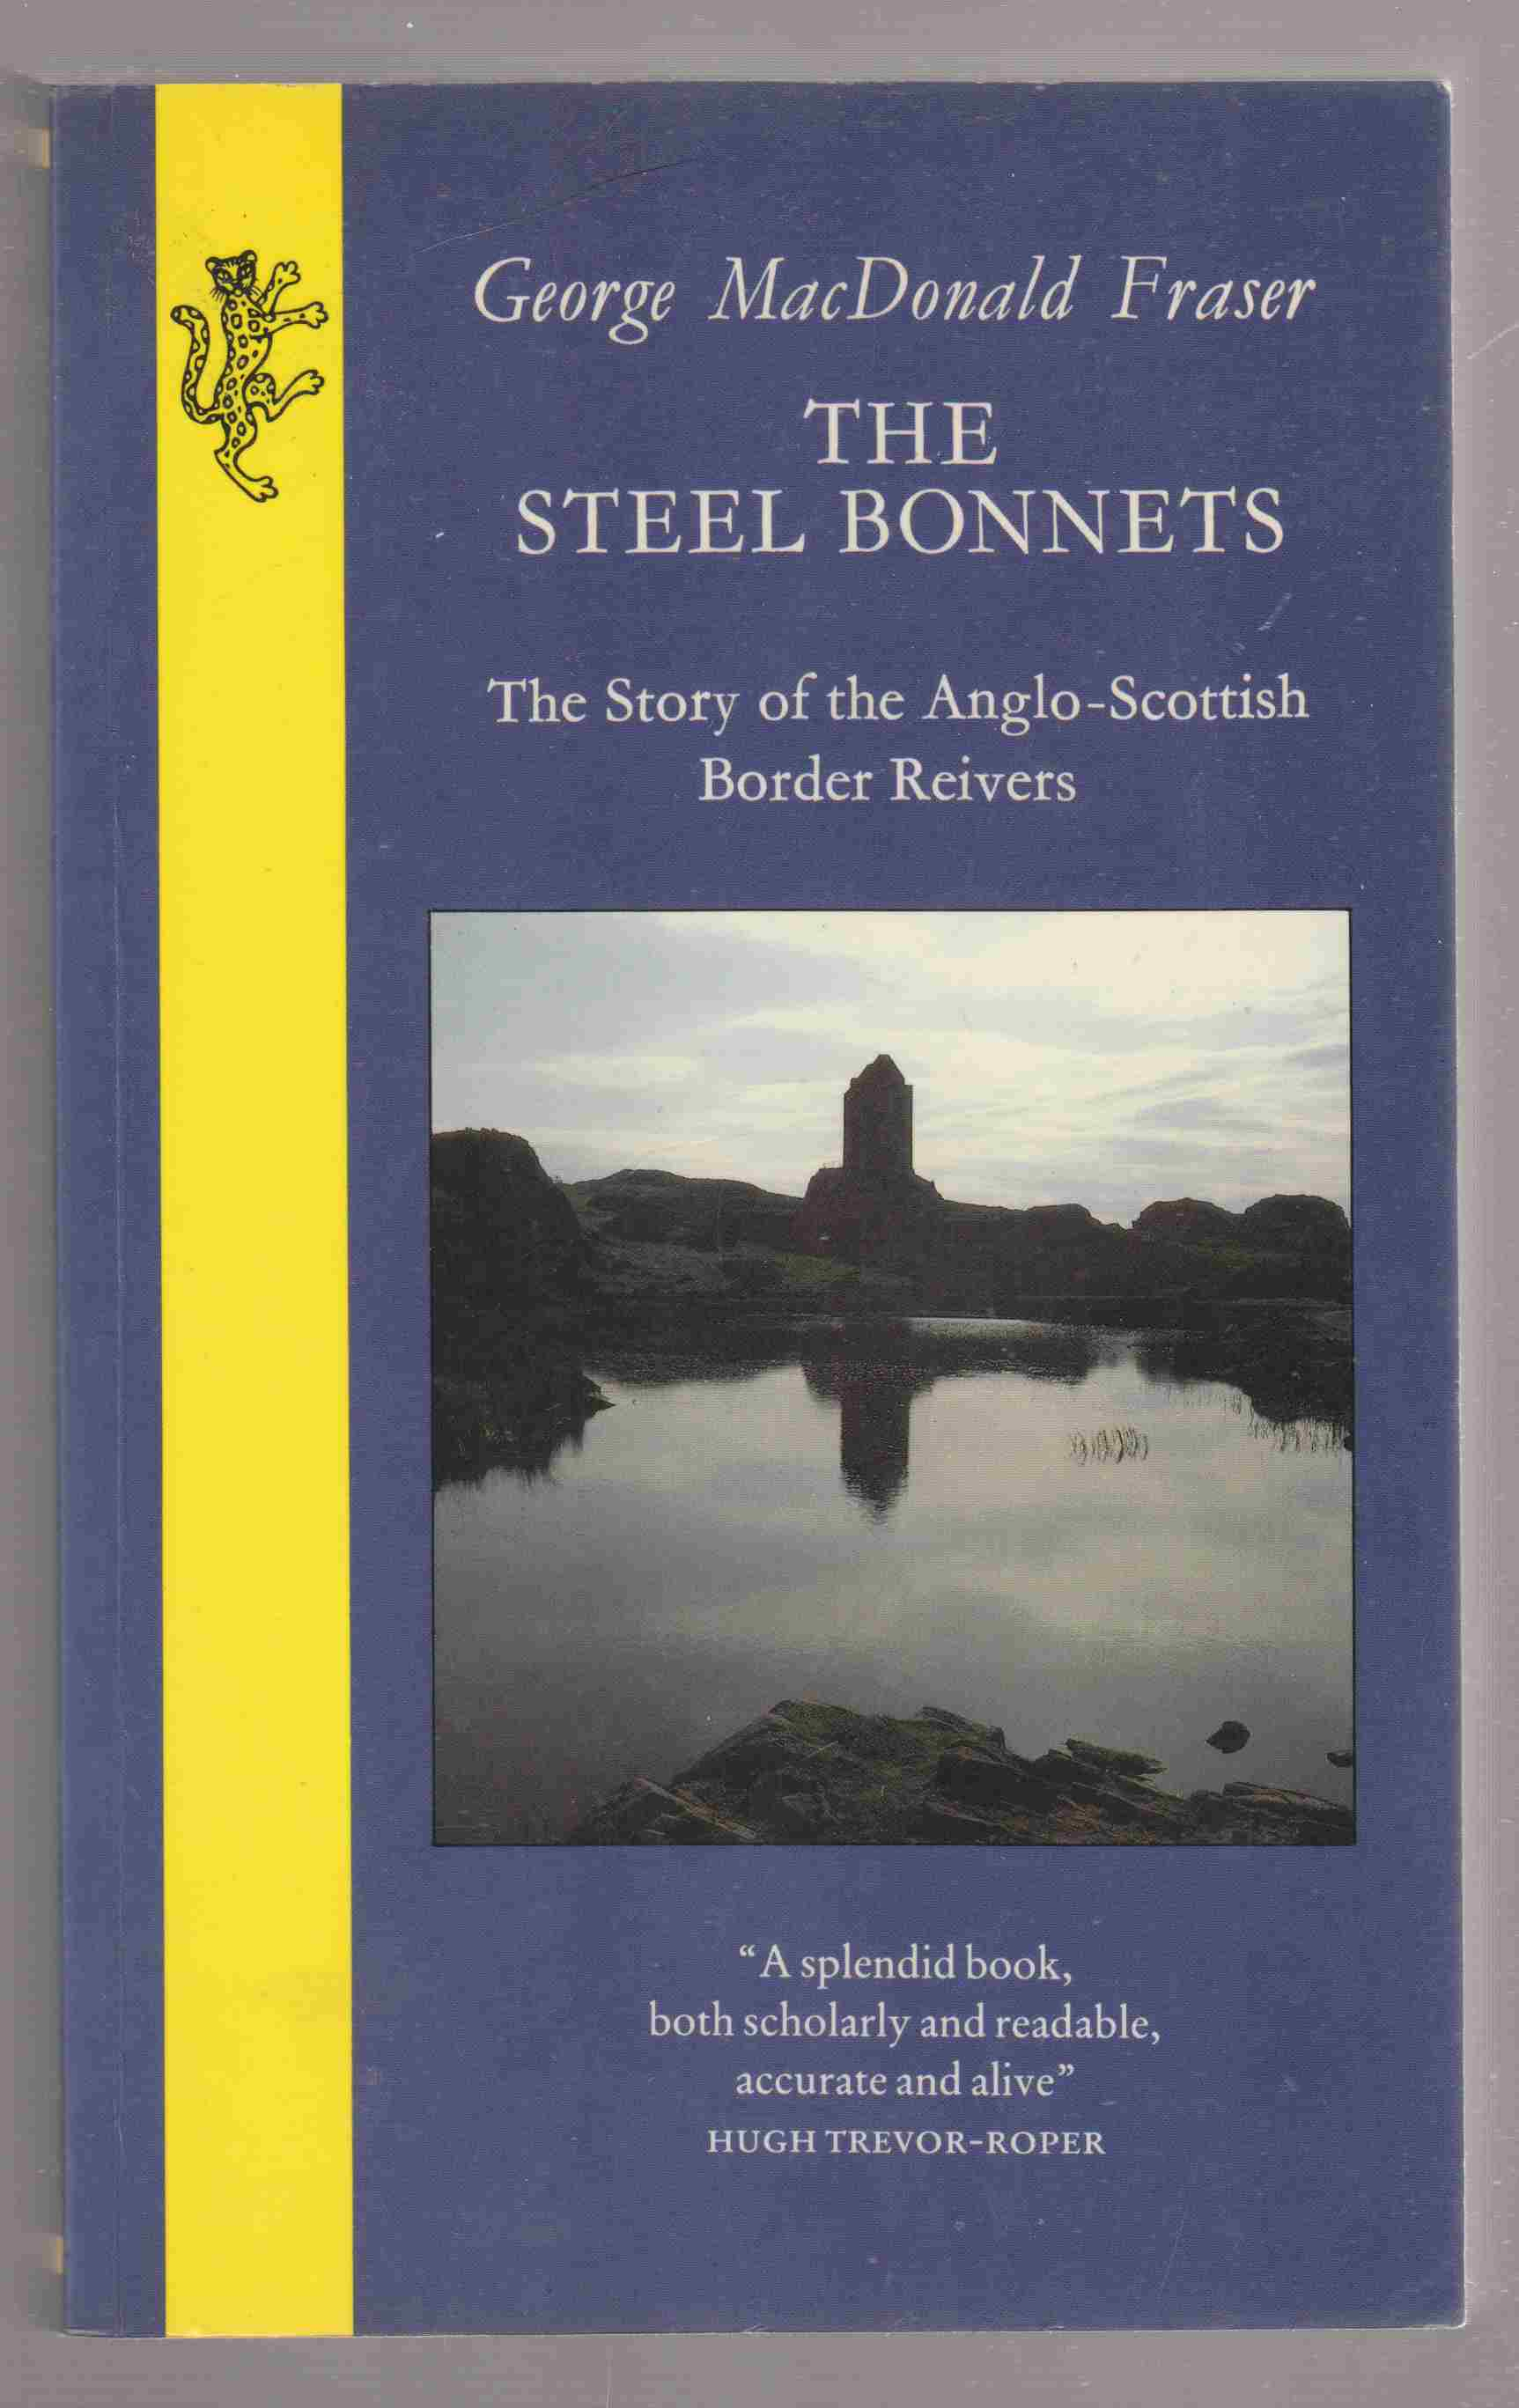 Image for The Steel Bonnets The Story of the Anglo-Scottish Border Reivers